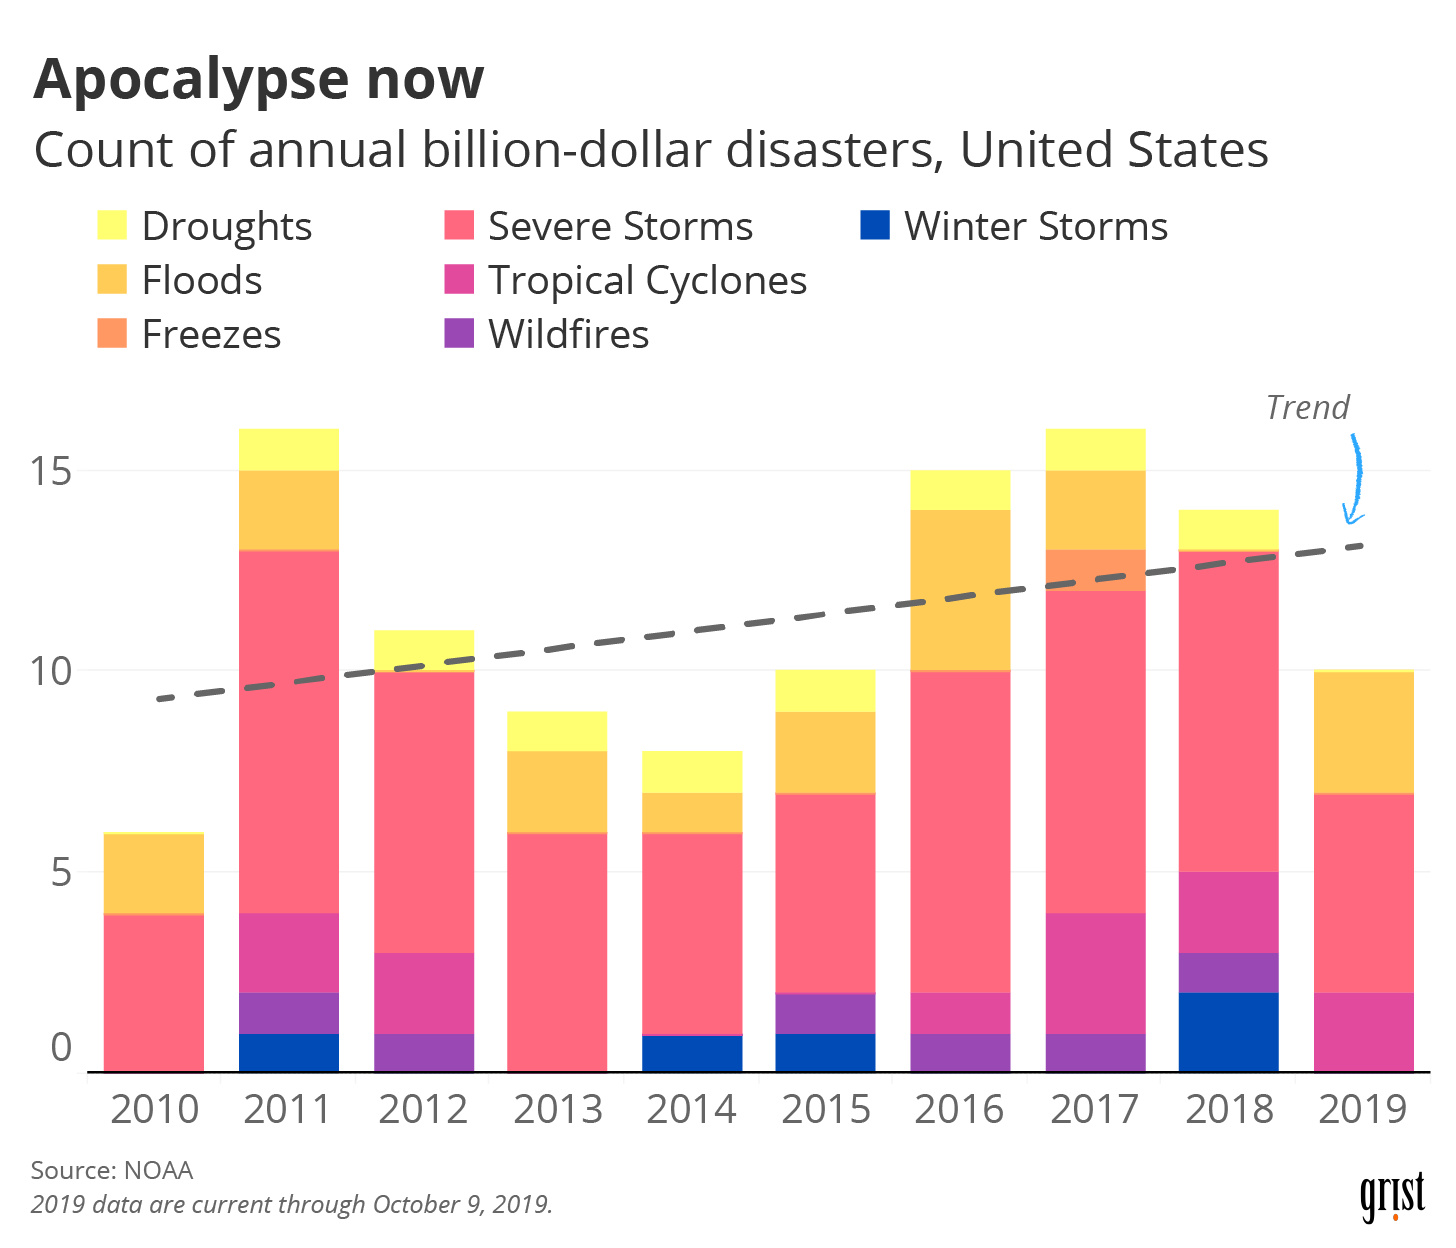 A bar chart showing an increasing frequency of billion-dollar disasters between 2010 and 2019